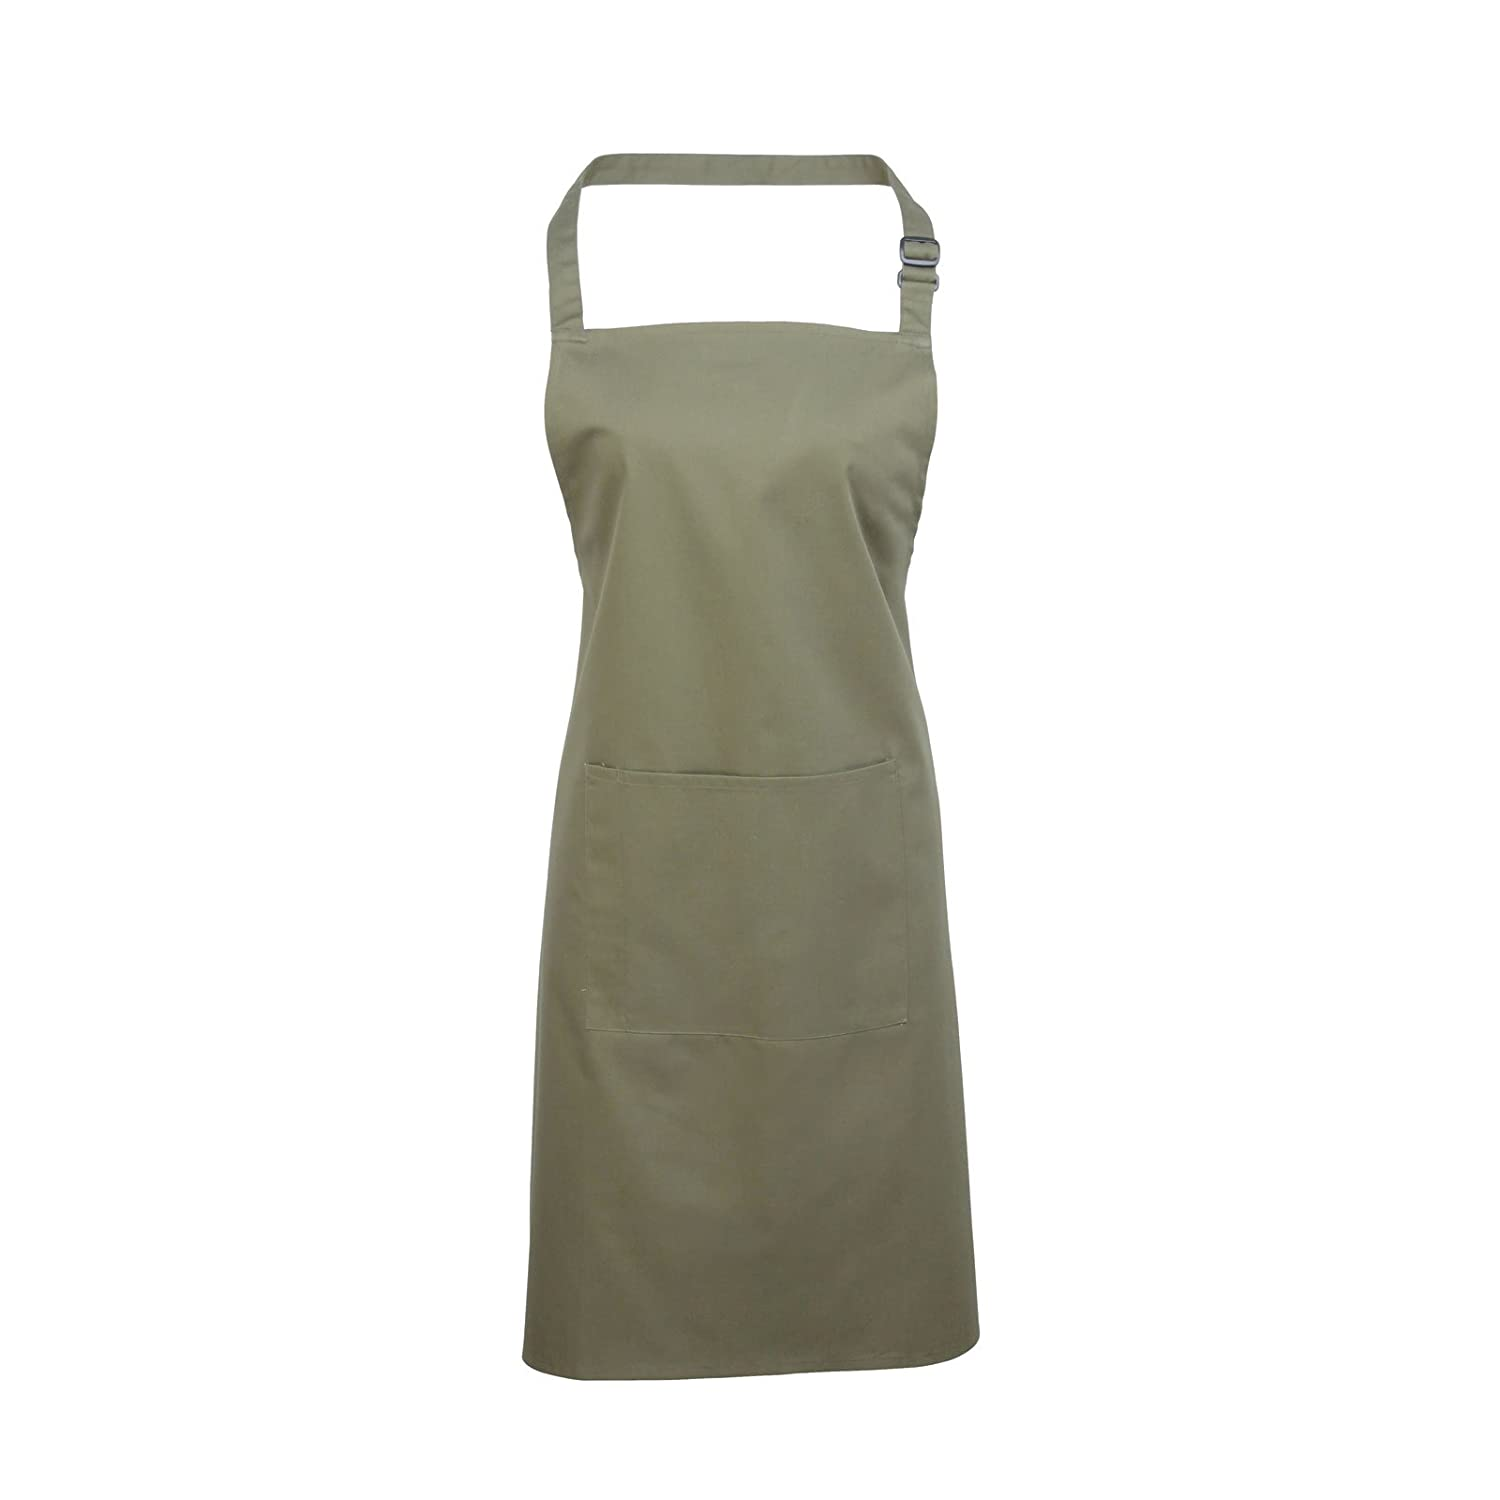 Adults/Unisex Plain Polycotton Bib Apron With Pocket - Various Colours Available (Sage)